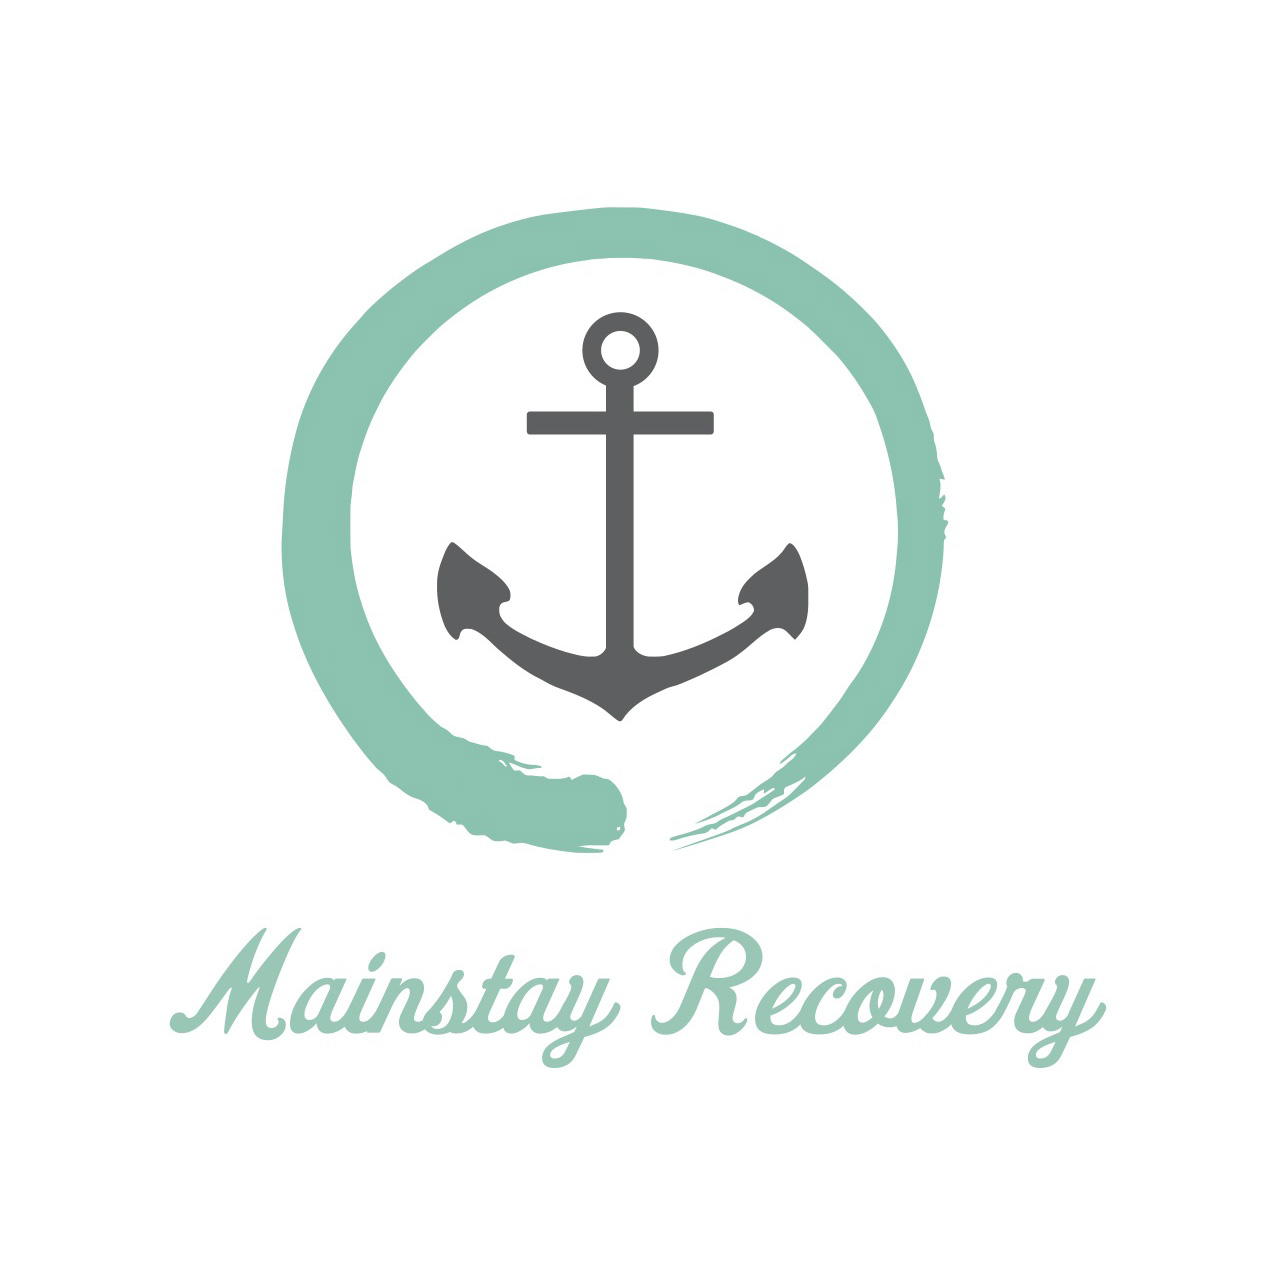 Mainstay Recovery